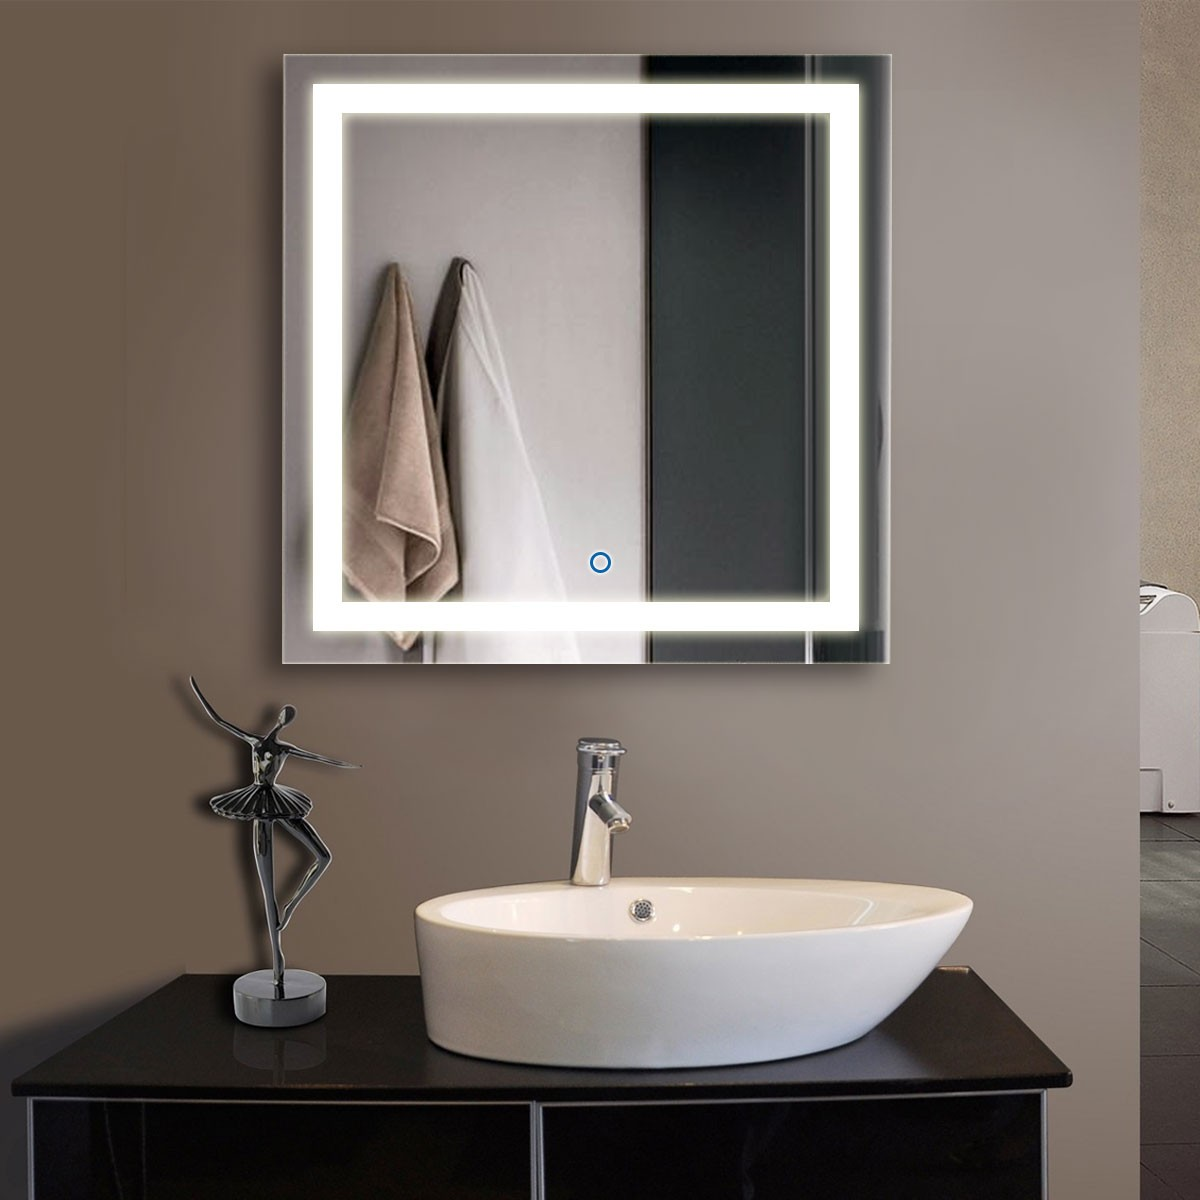 Bathroom Mirrors Led buy bathroom led lighted mirrors, backlit mirrors | decoraport usa